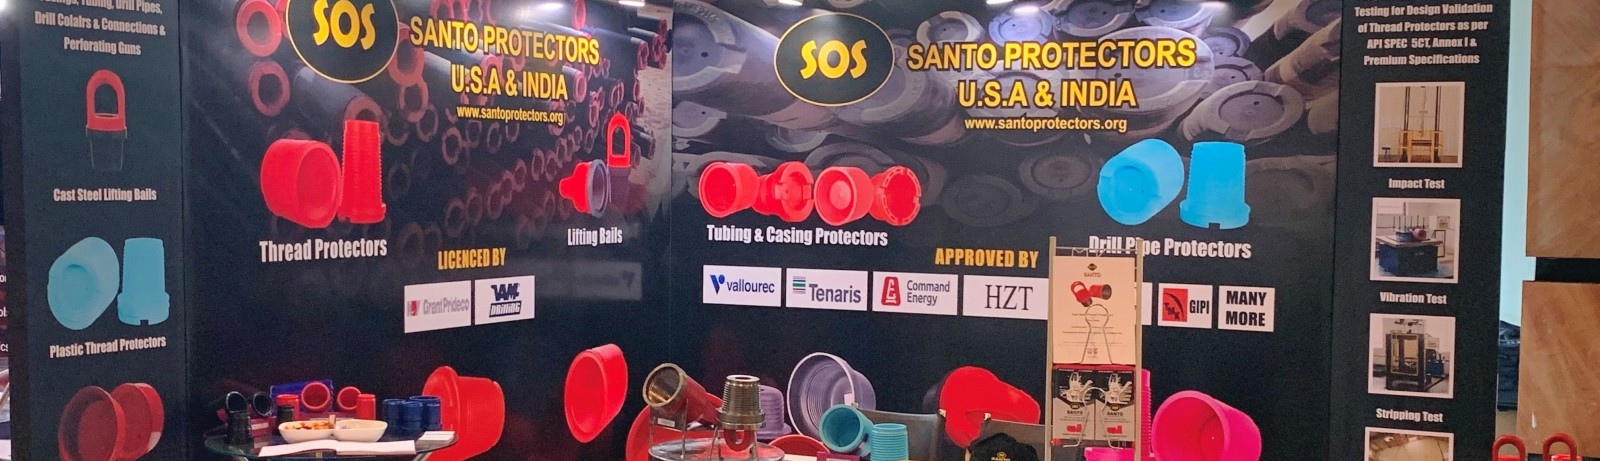 SANTO participated in SPE Oil&Gas India Conference & Exhibition 2019